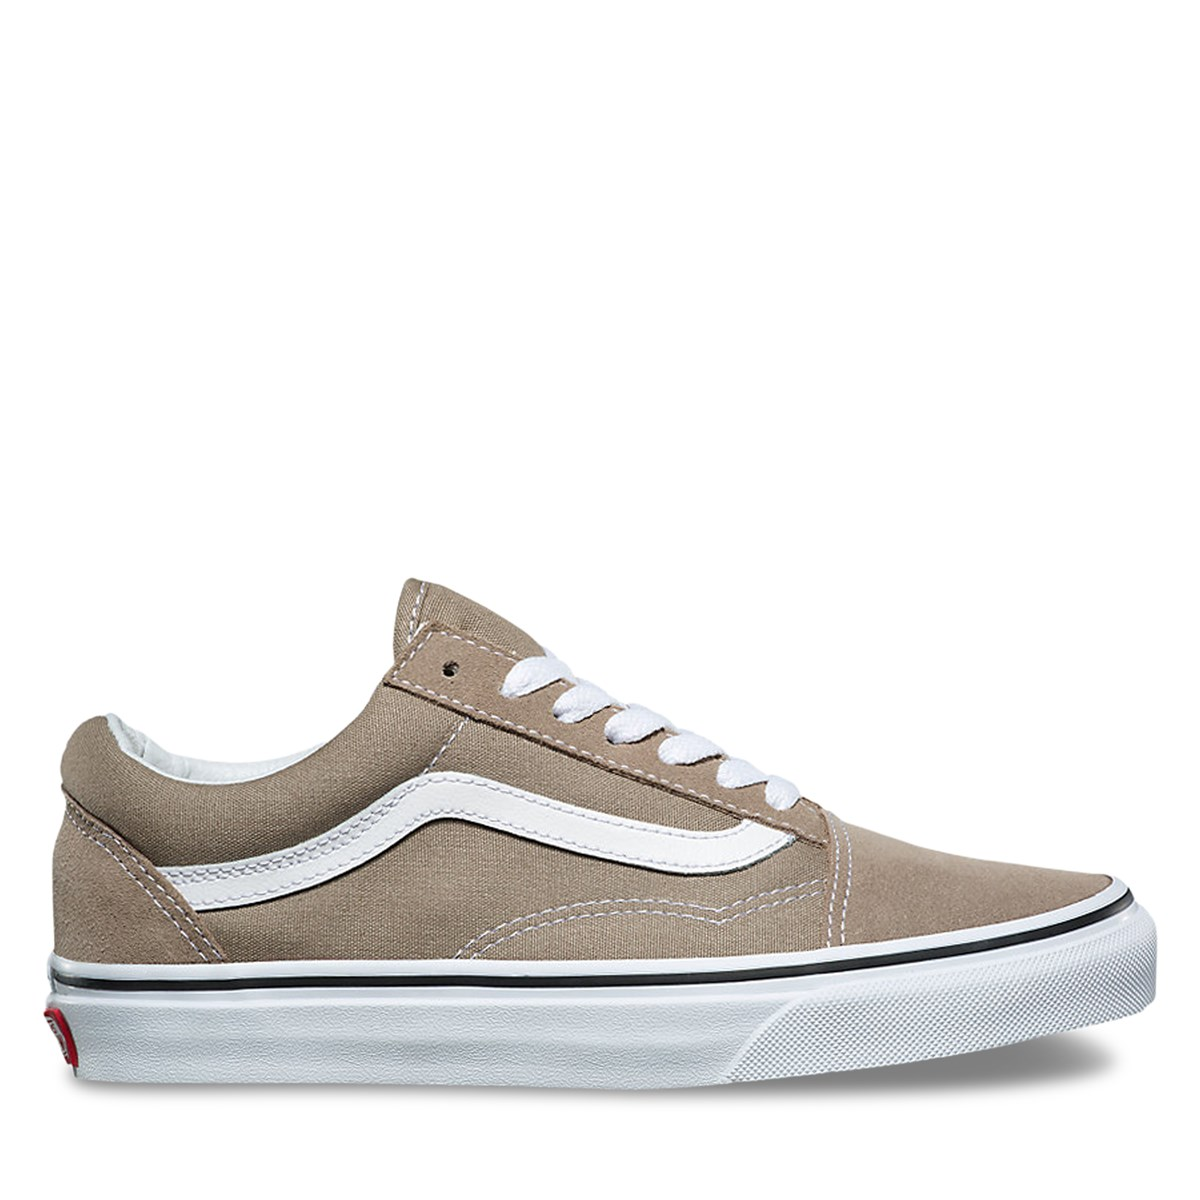 Women s Old Skool Sneaker in Desert Taupe. Previous. default view  ALT1   ALT2 6113d9bbb